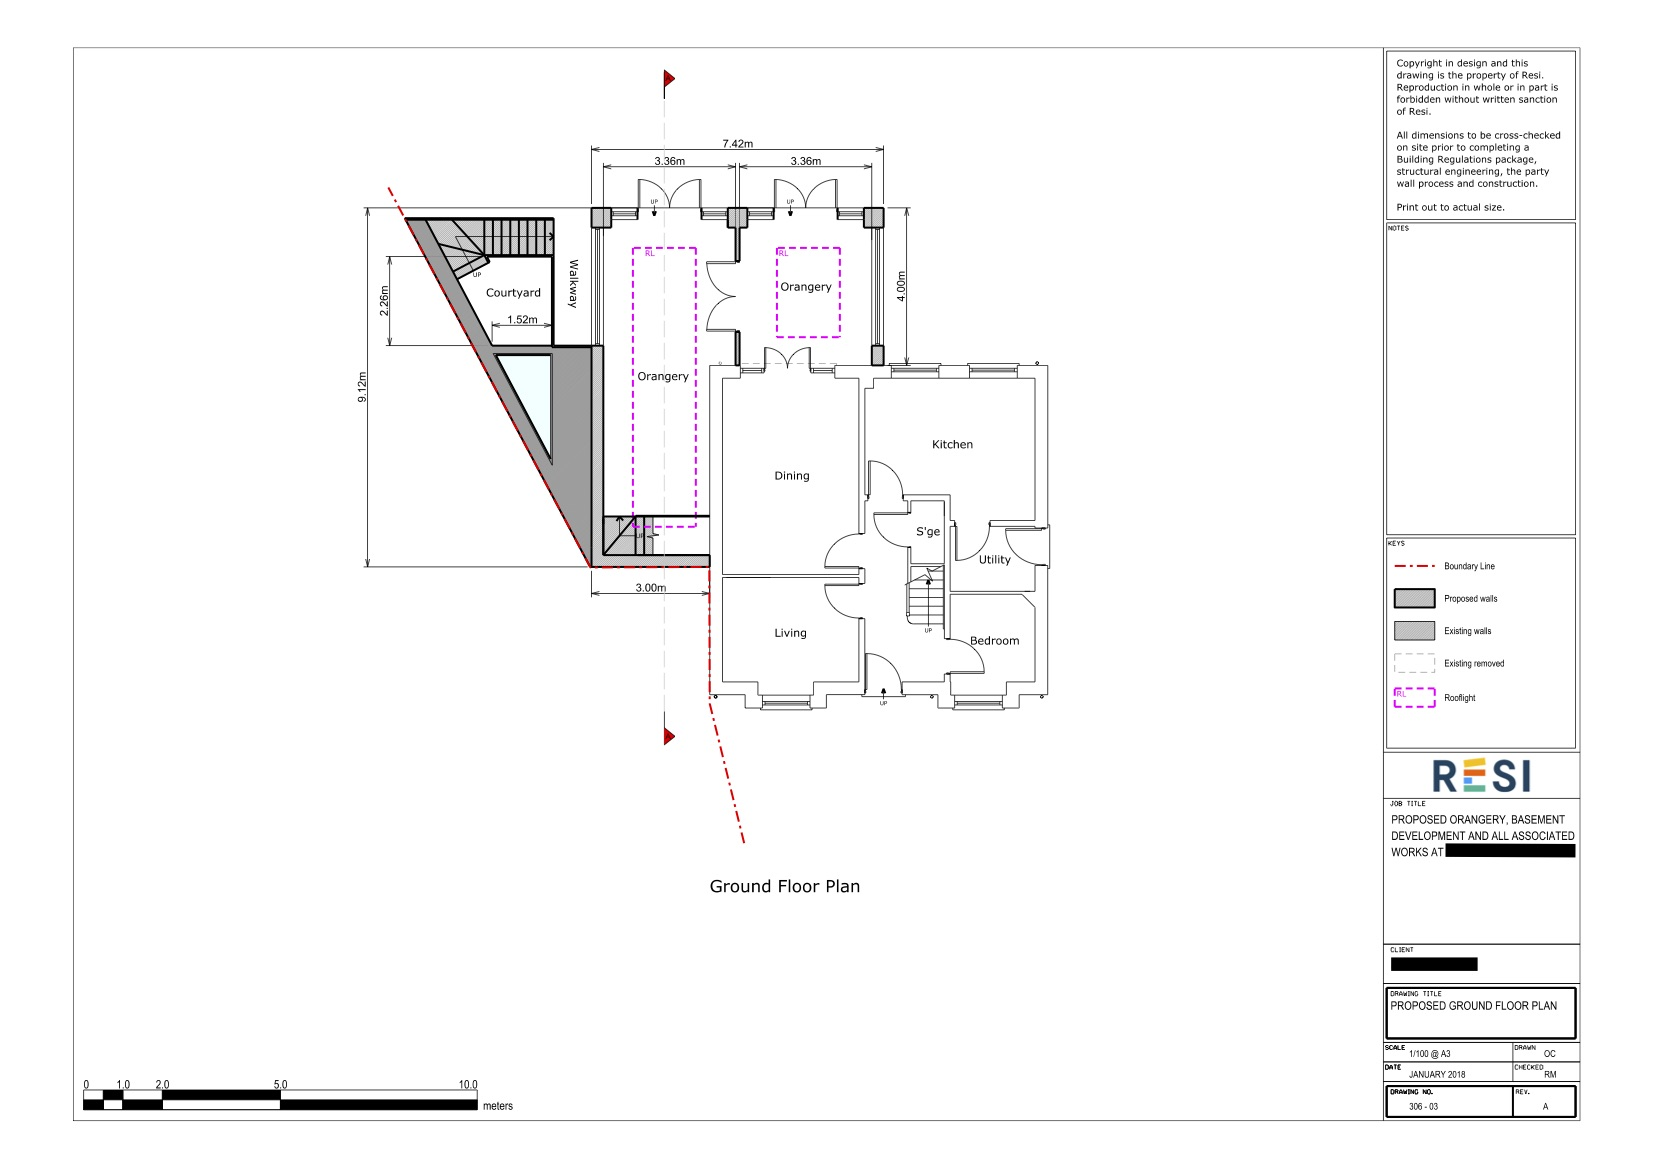 Architectural drawing package rev a  ground floor plan